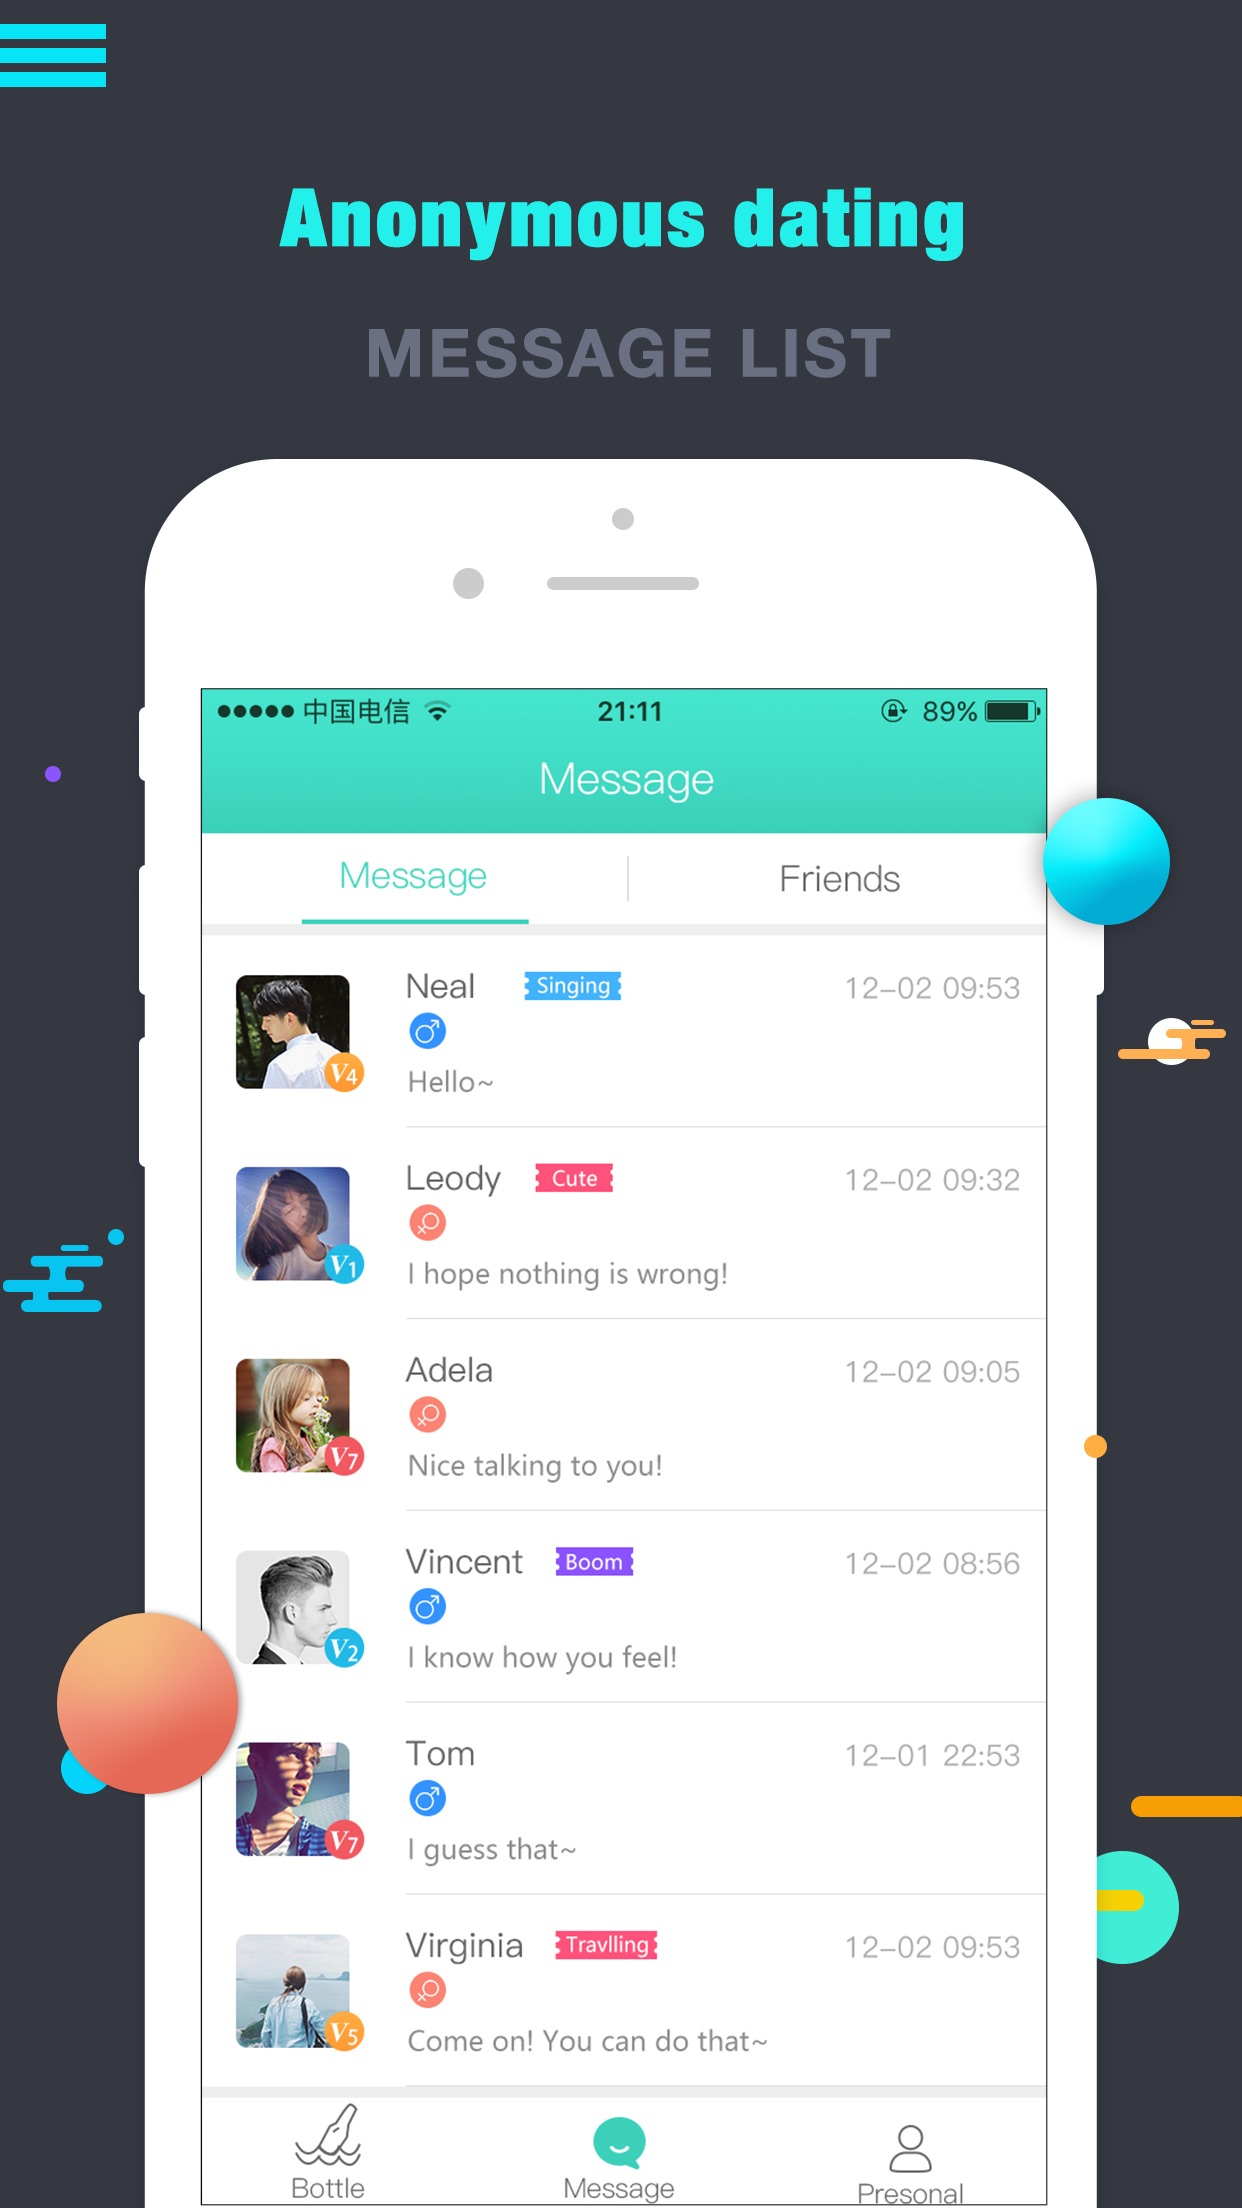 Waka Chat omegle meet strangers anonymous dating by Mingren Zhao AppAdvice